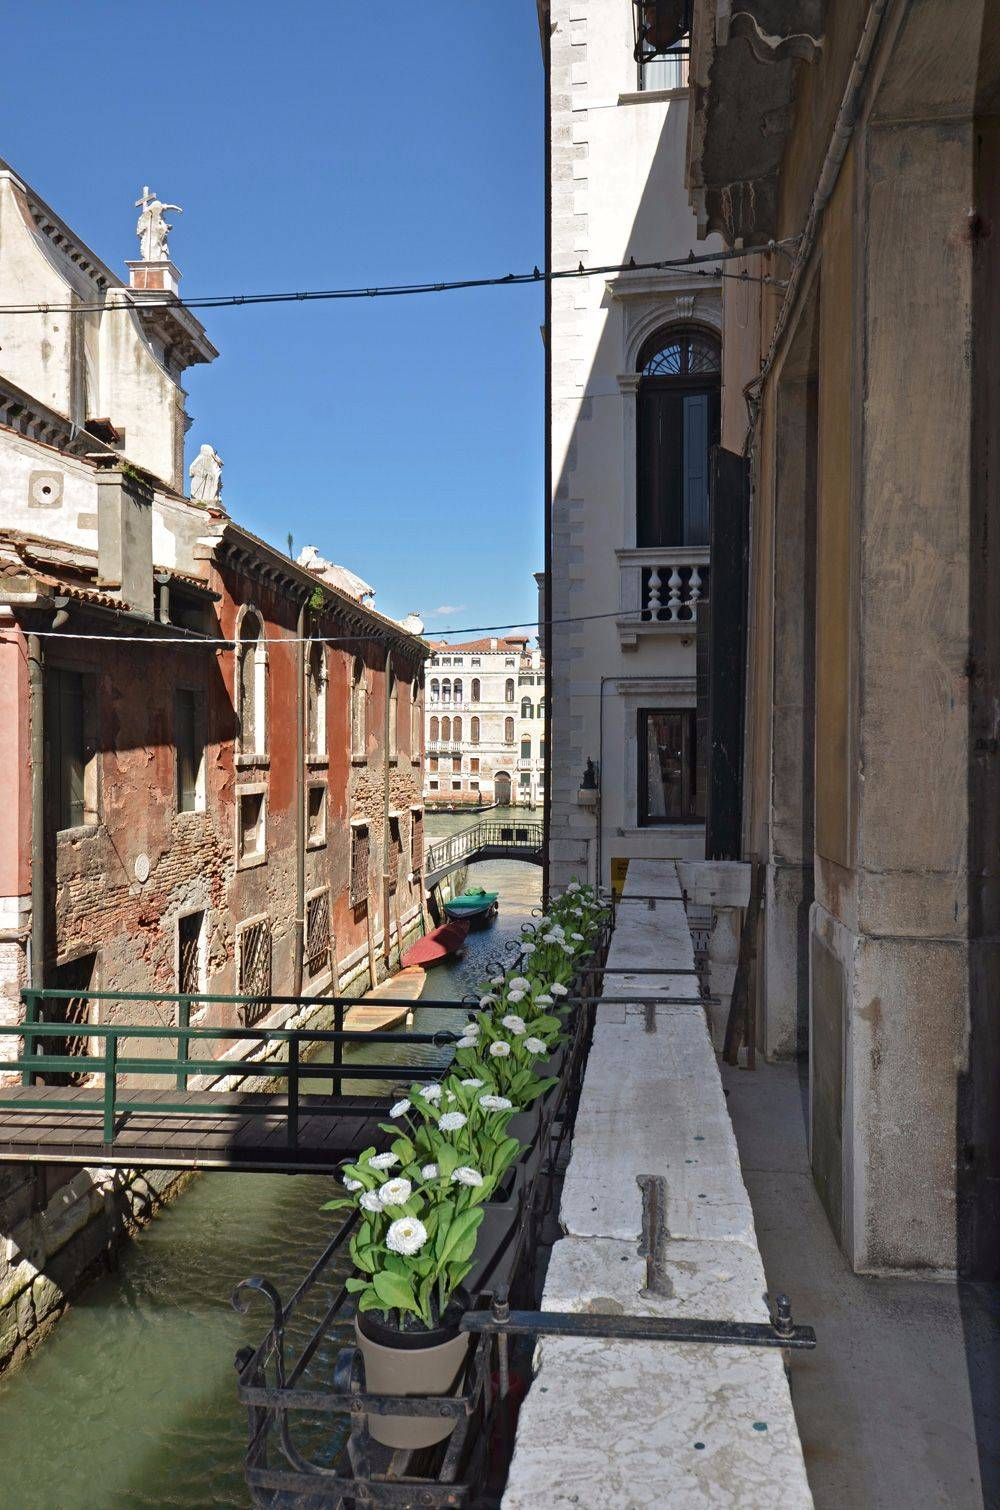 picturesque canal view enjoyable from the balcony